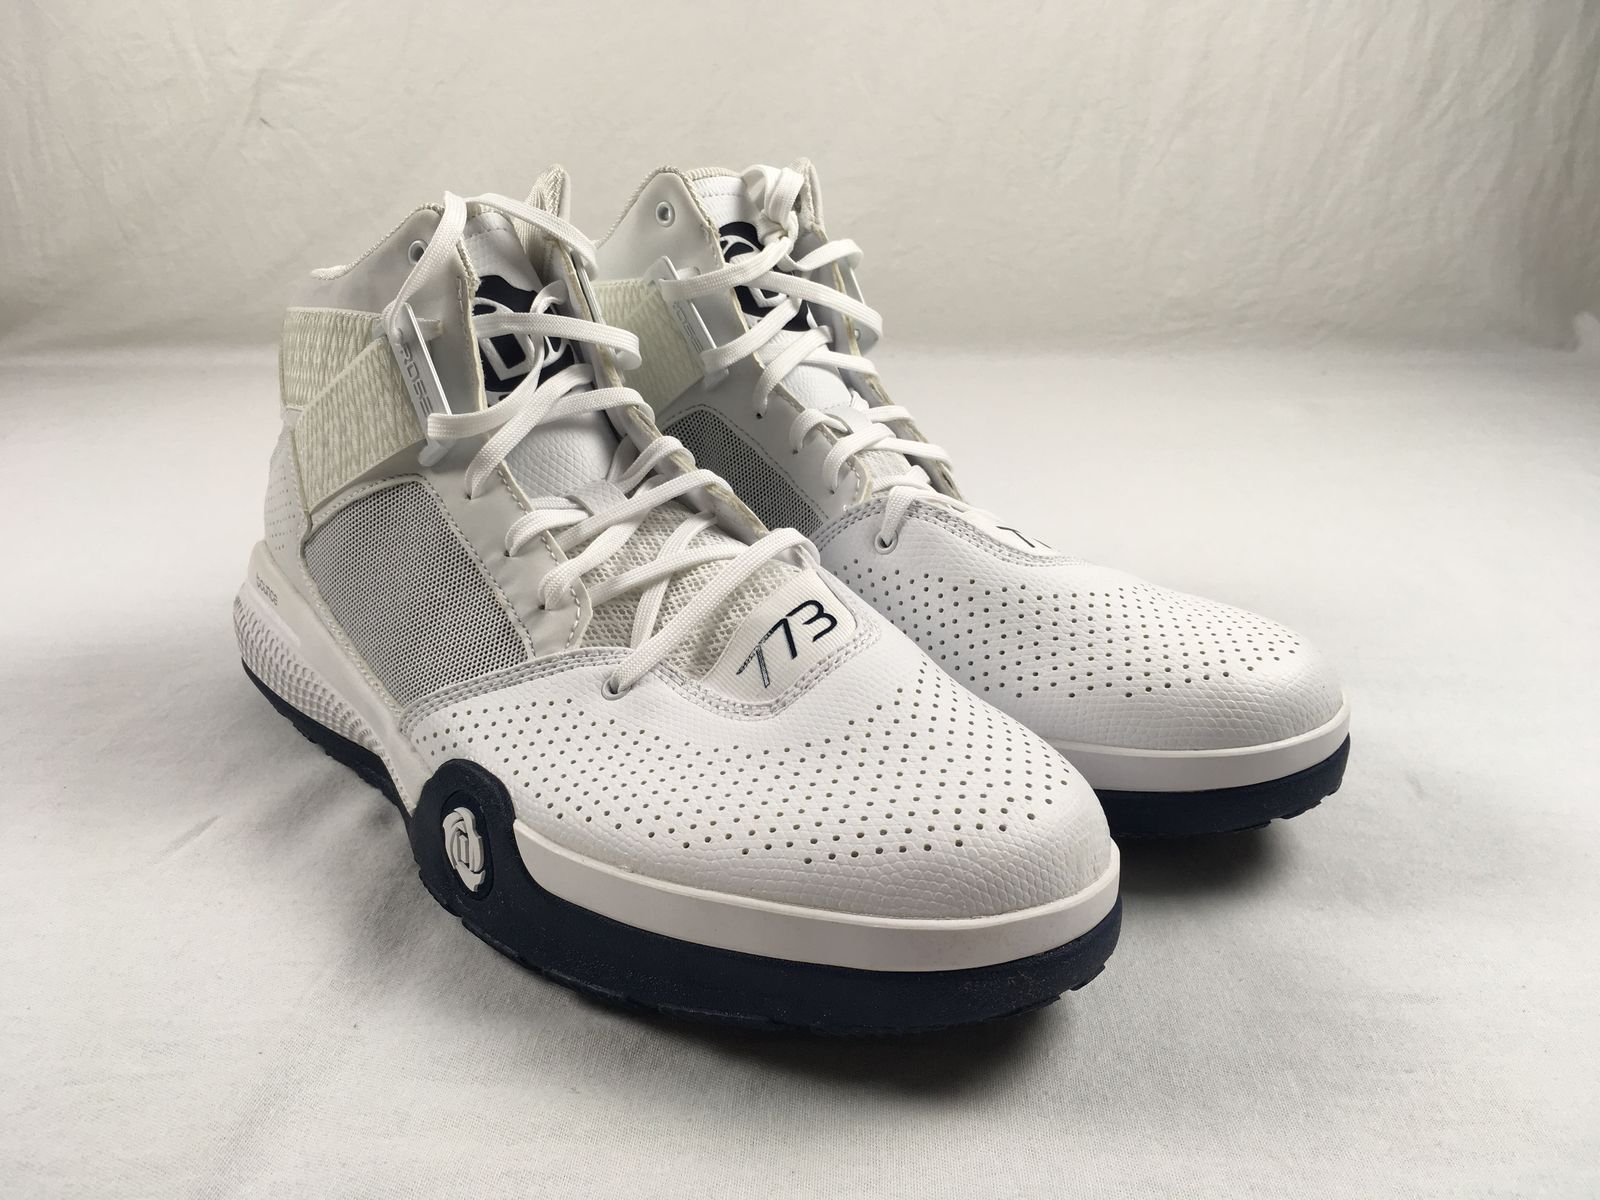 quality design 9ff00 ef3aa Details about NEW adidas D Rose 7 - White Basketball Shoes (Mens 15)